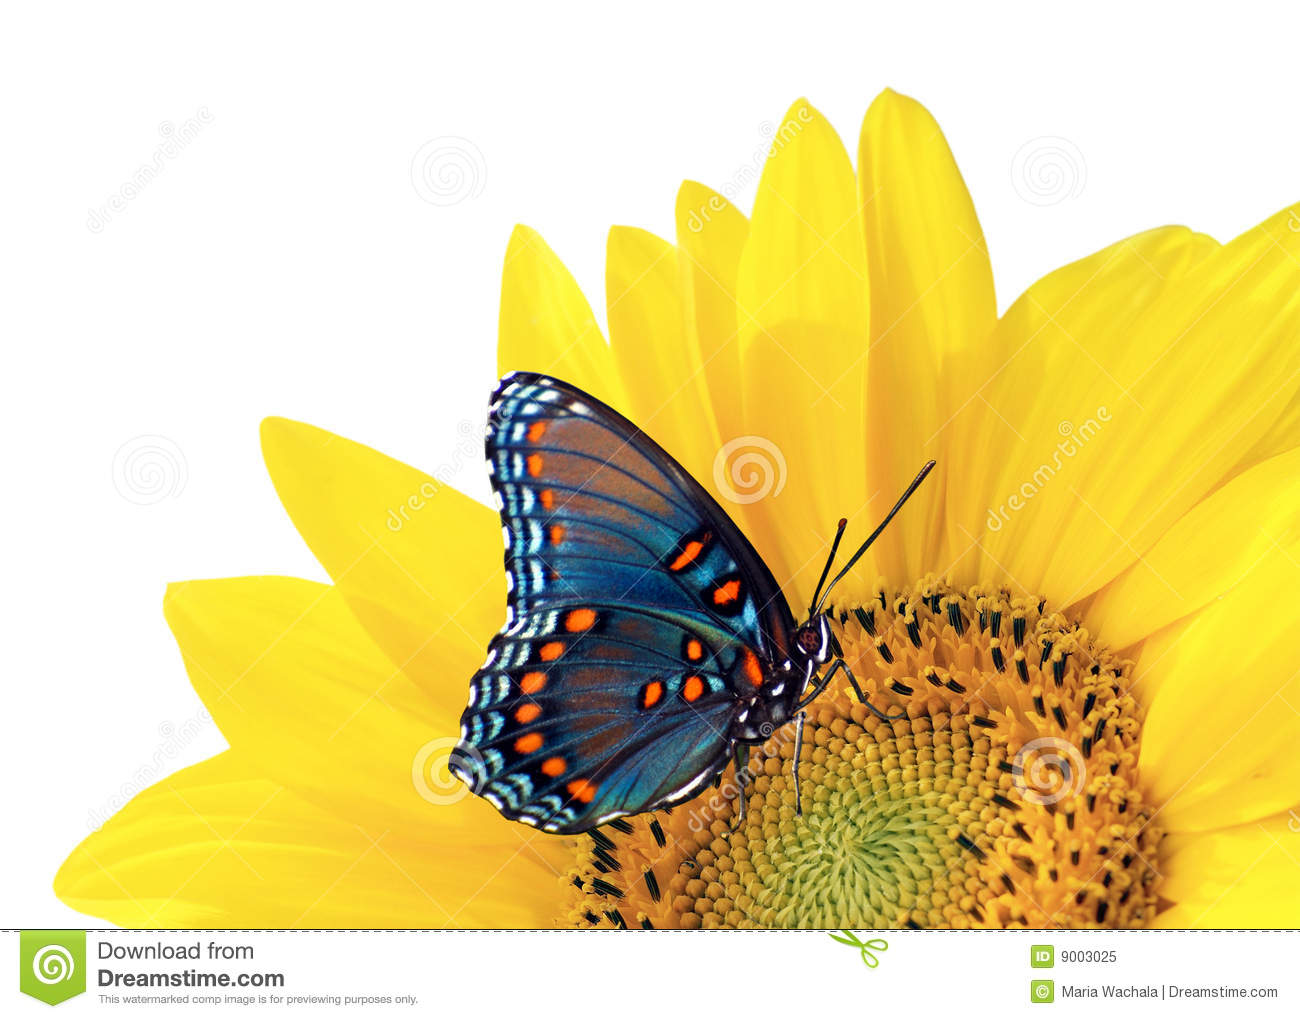 Sunflower And Blue Butterfly Stock Image - Image: 9003025